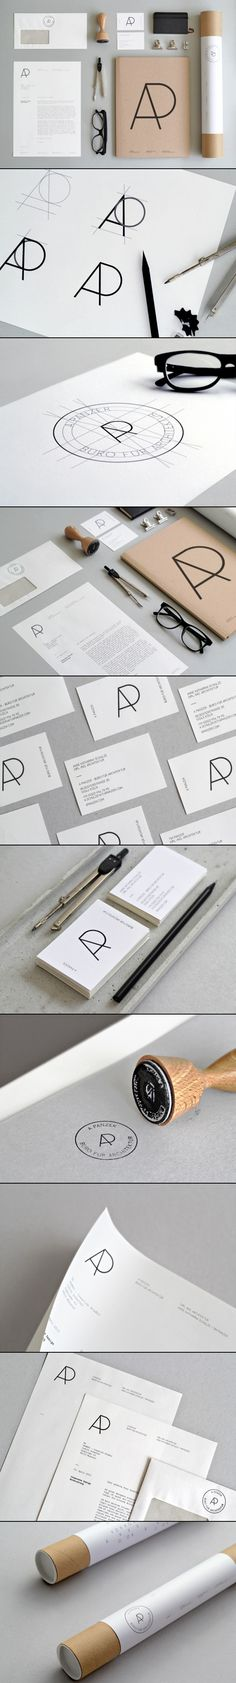 """Like the Logo A Panzer, Büro für Architektur Brand Identity via Design made in Germany."" Stamp!"